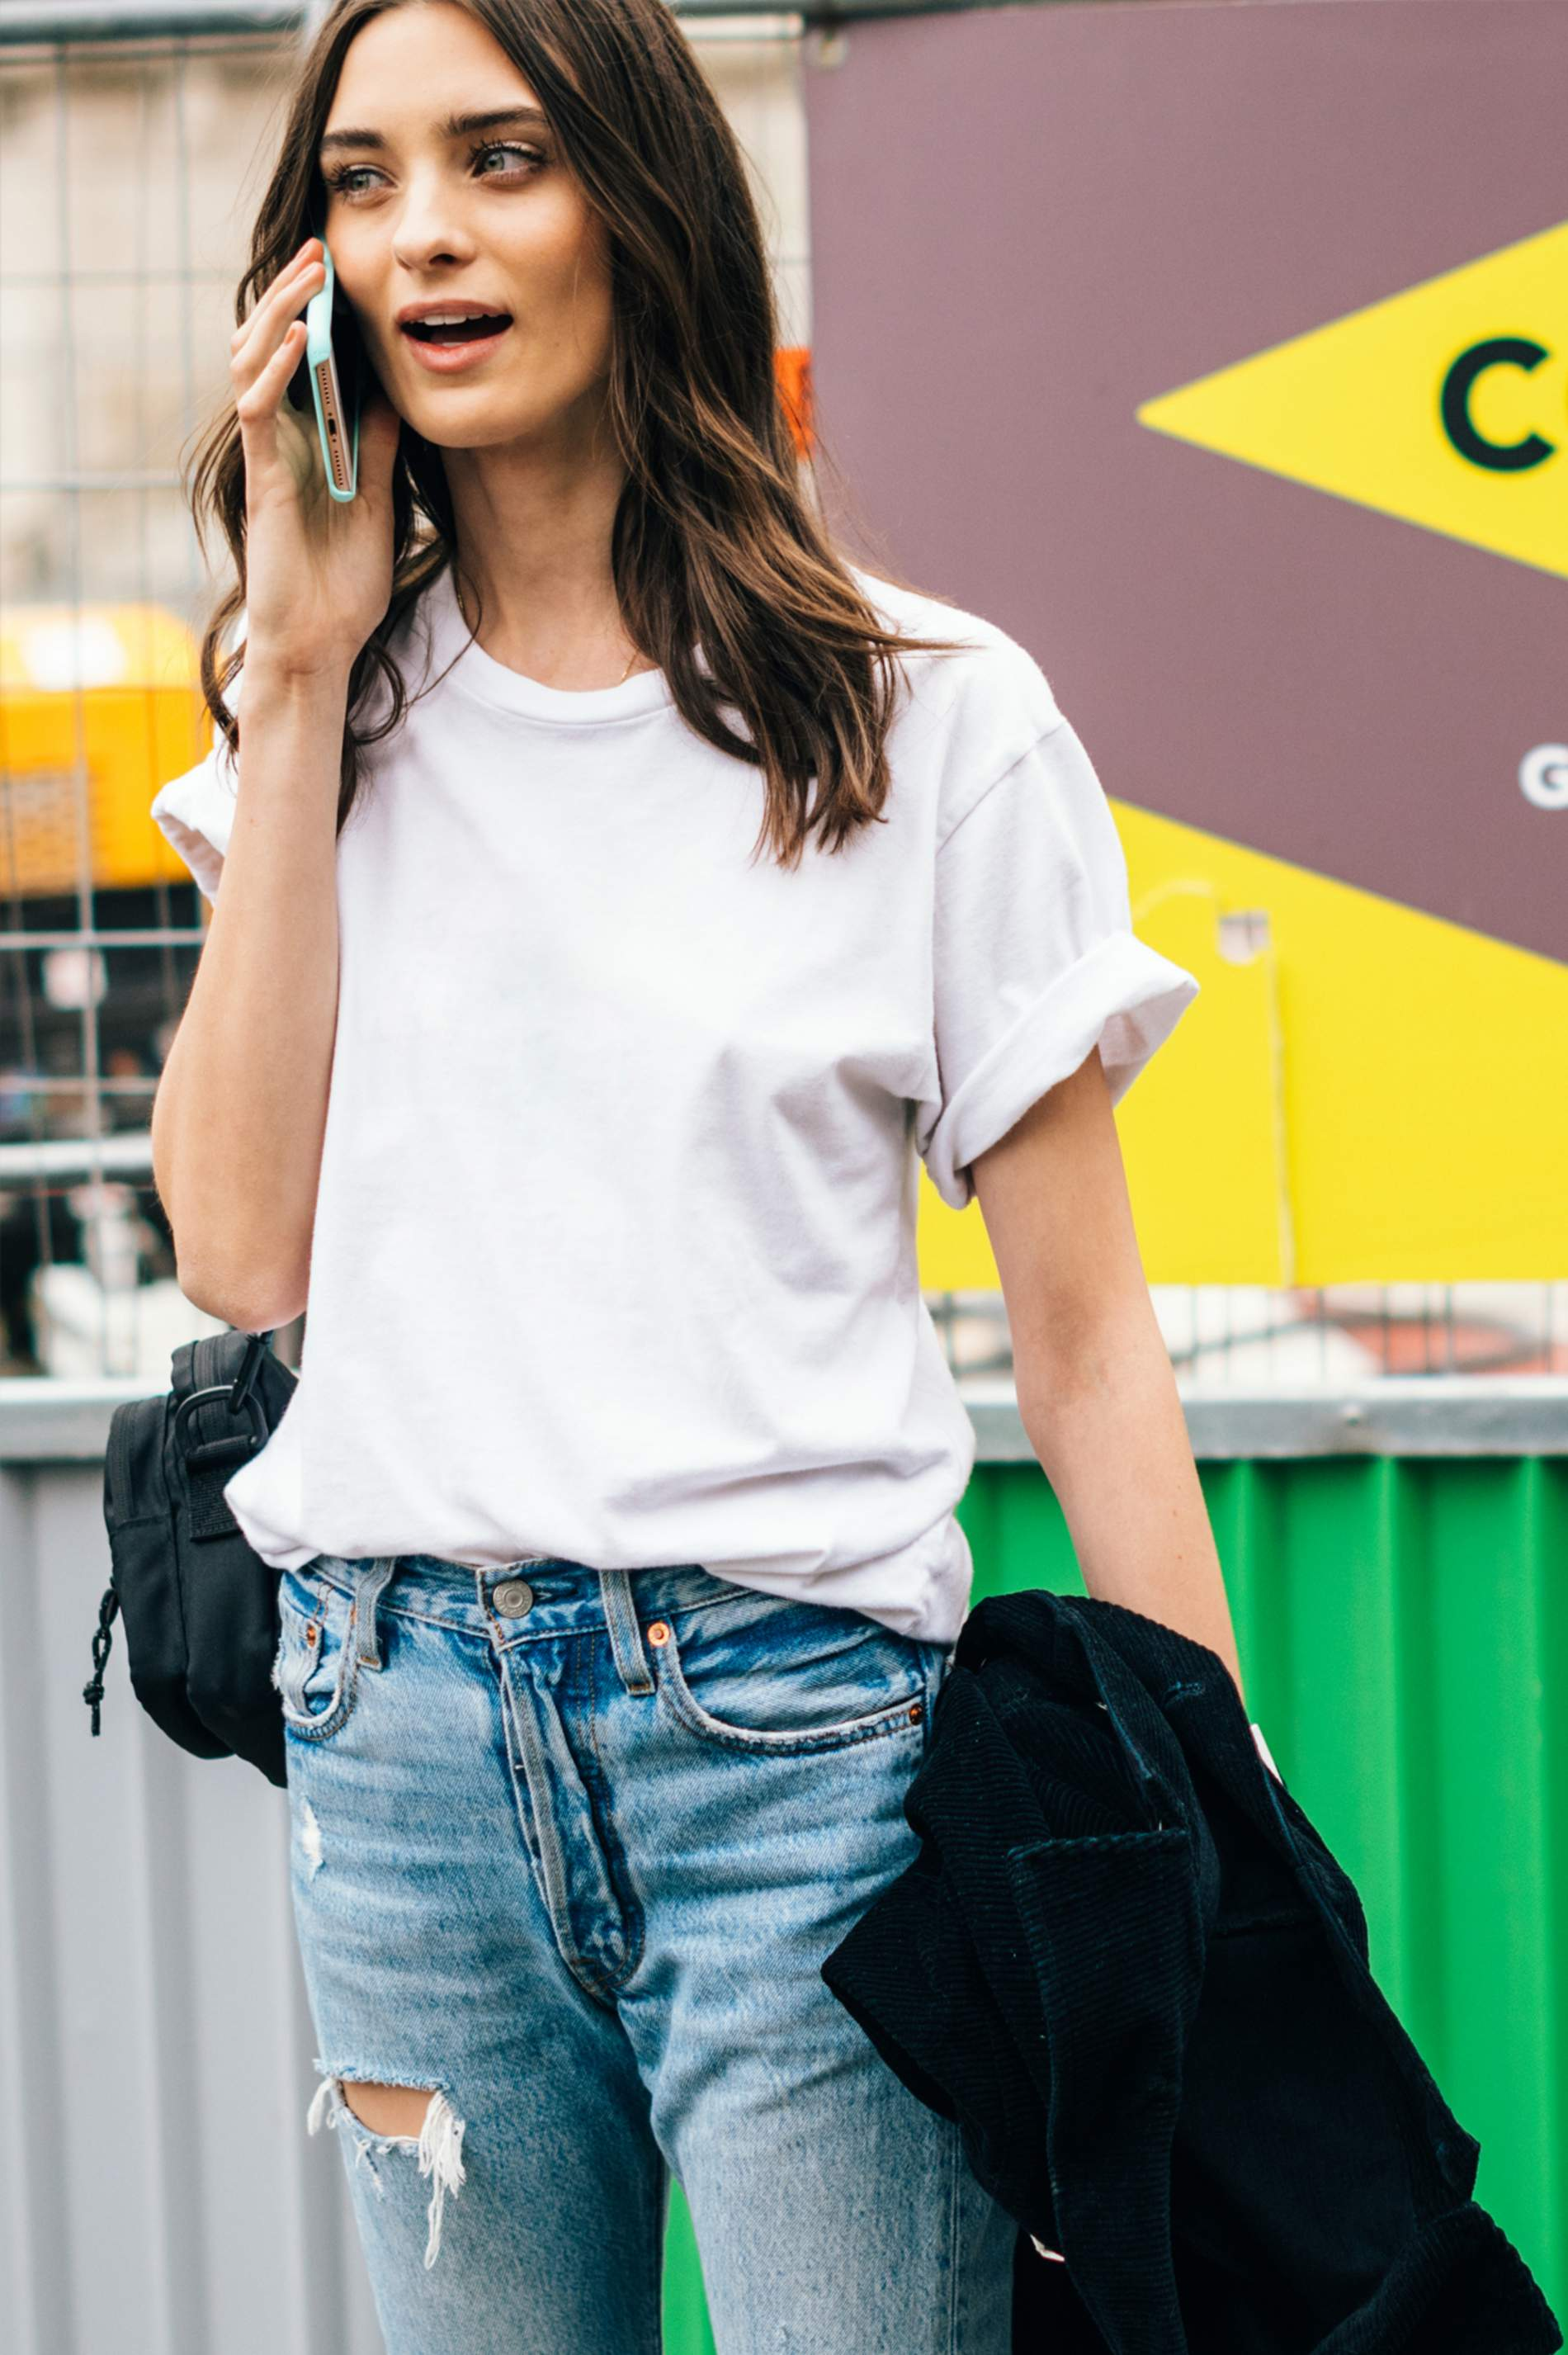 ff8f54c92 How To Wear A White T-Shirt: The Golden Style Rules To Know | PORTER